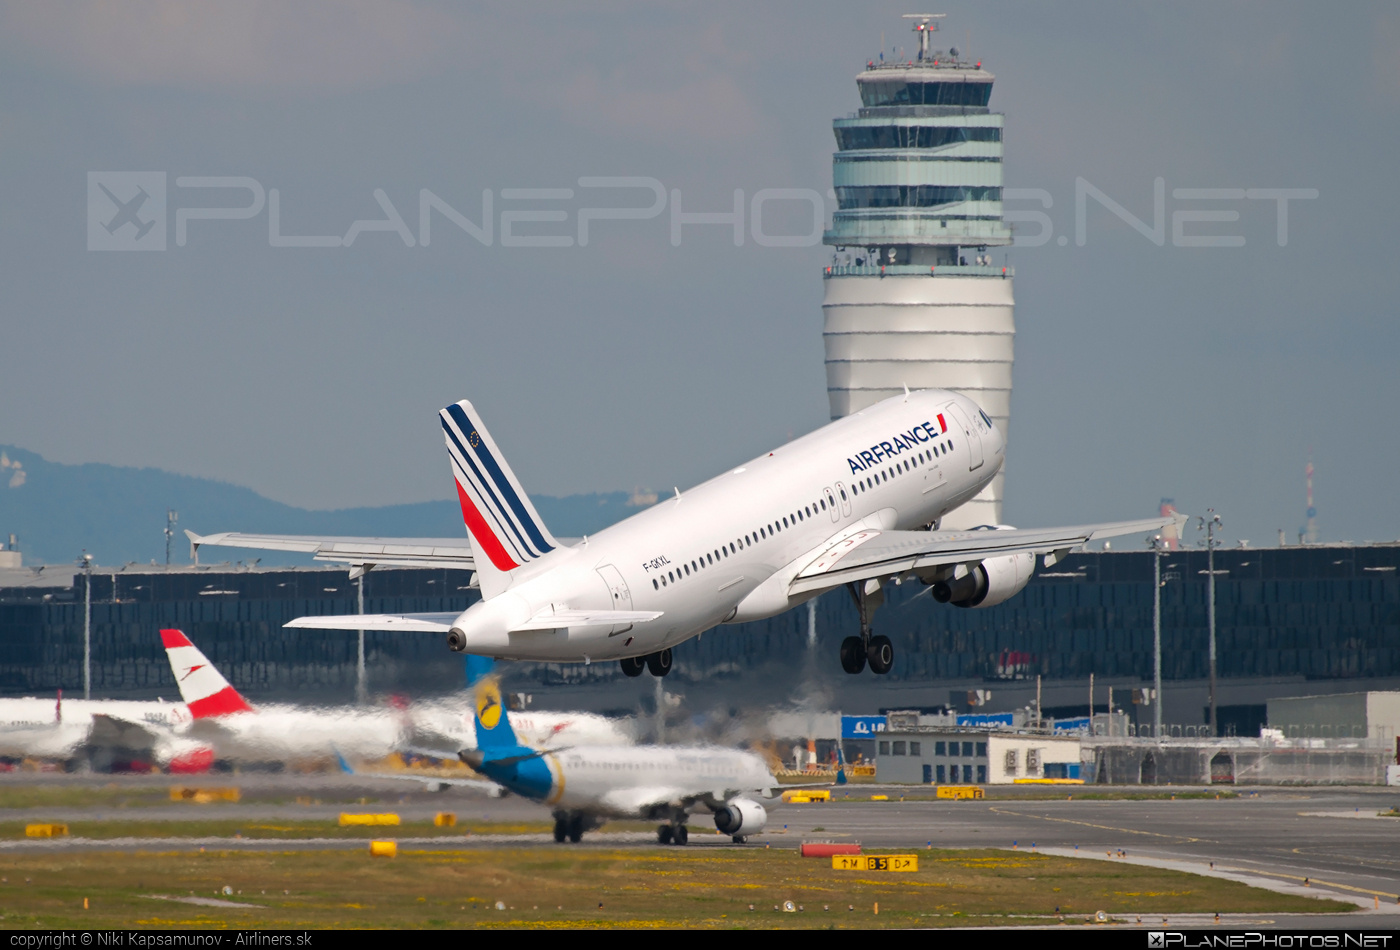 Airbus A320-214 - F-GKXL operated by Air France #a320 #a320family #airbus #airbus320 #airfrance